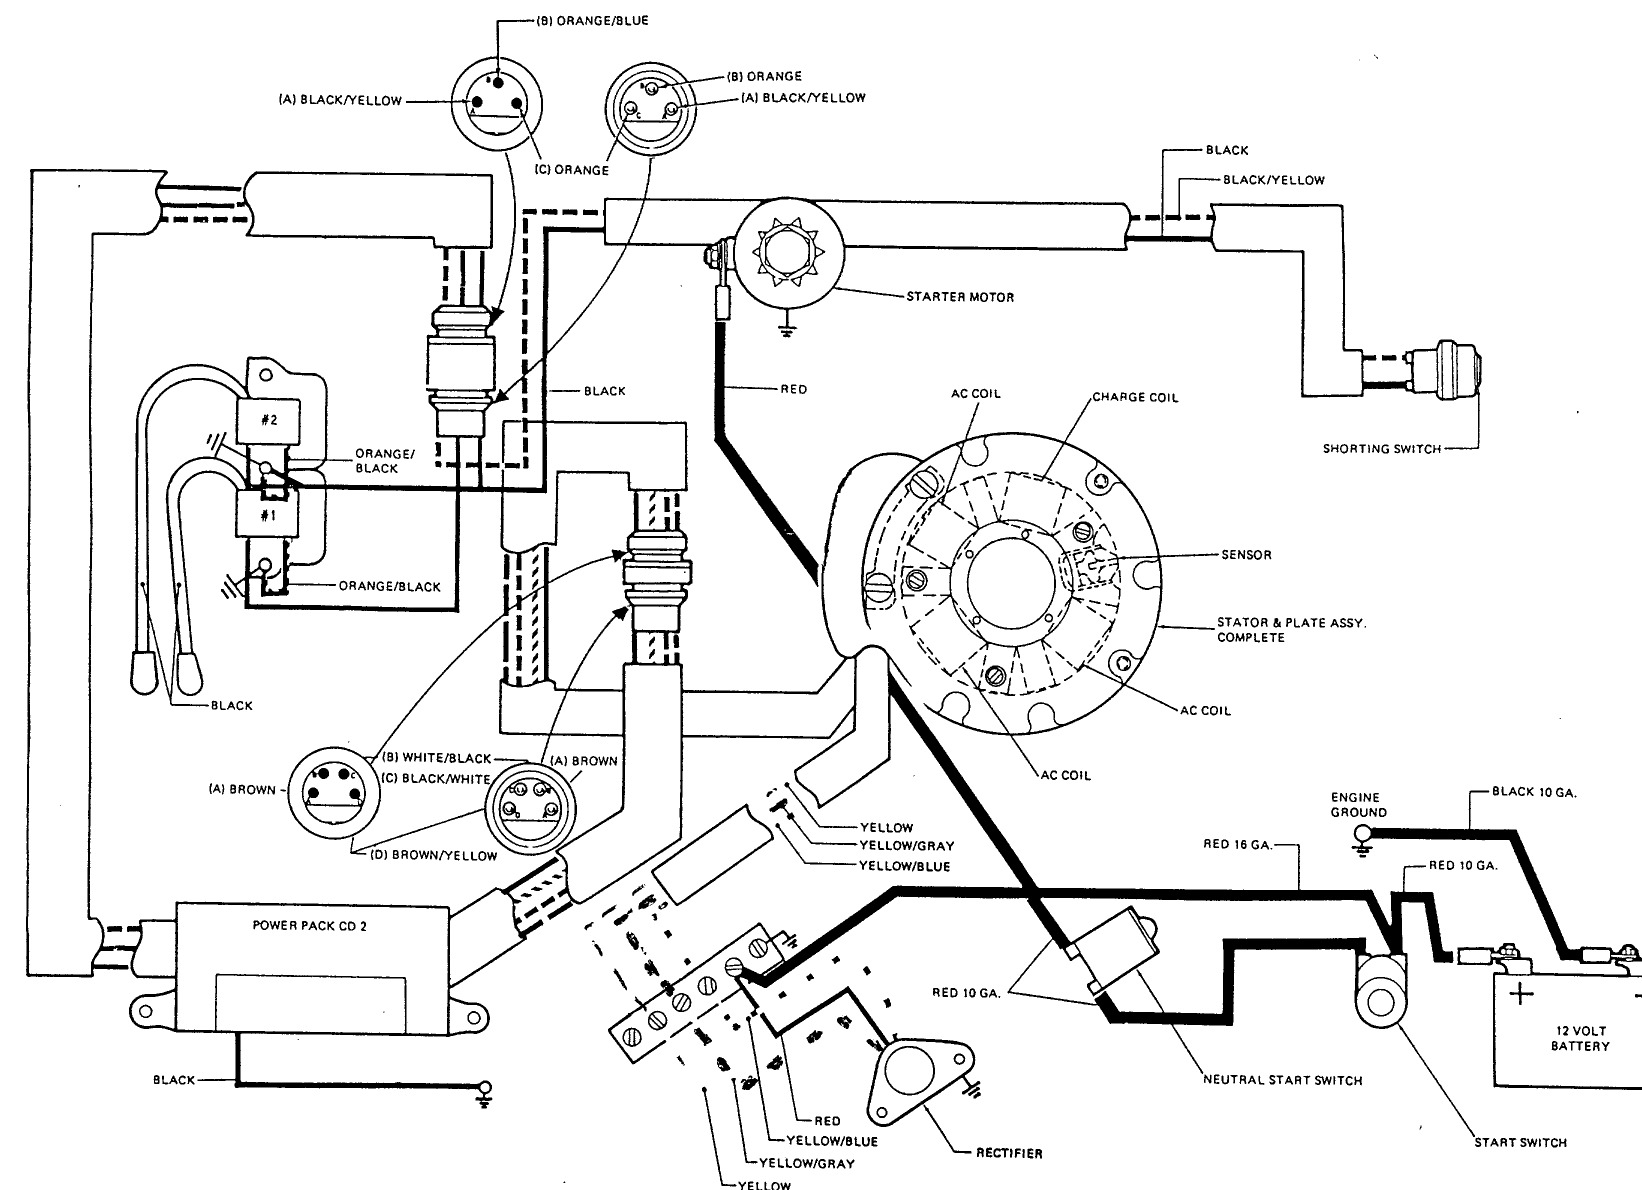 Honda 20 Hp Ignition Switch Wiring Diagram Honda Free